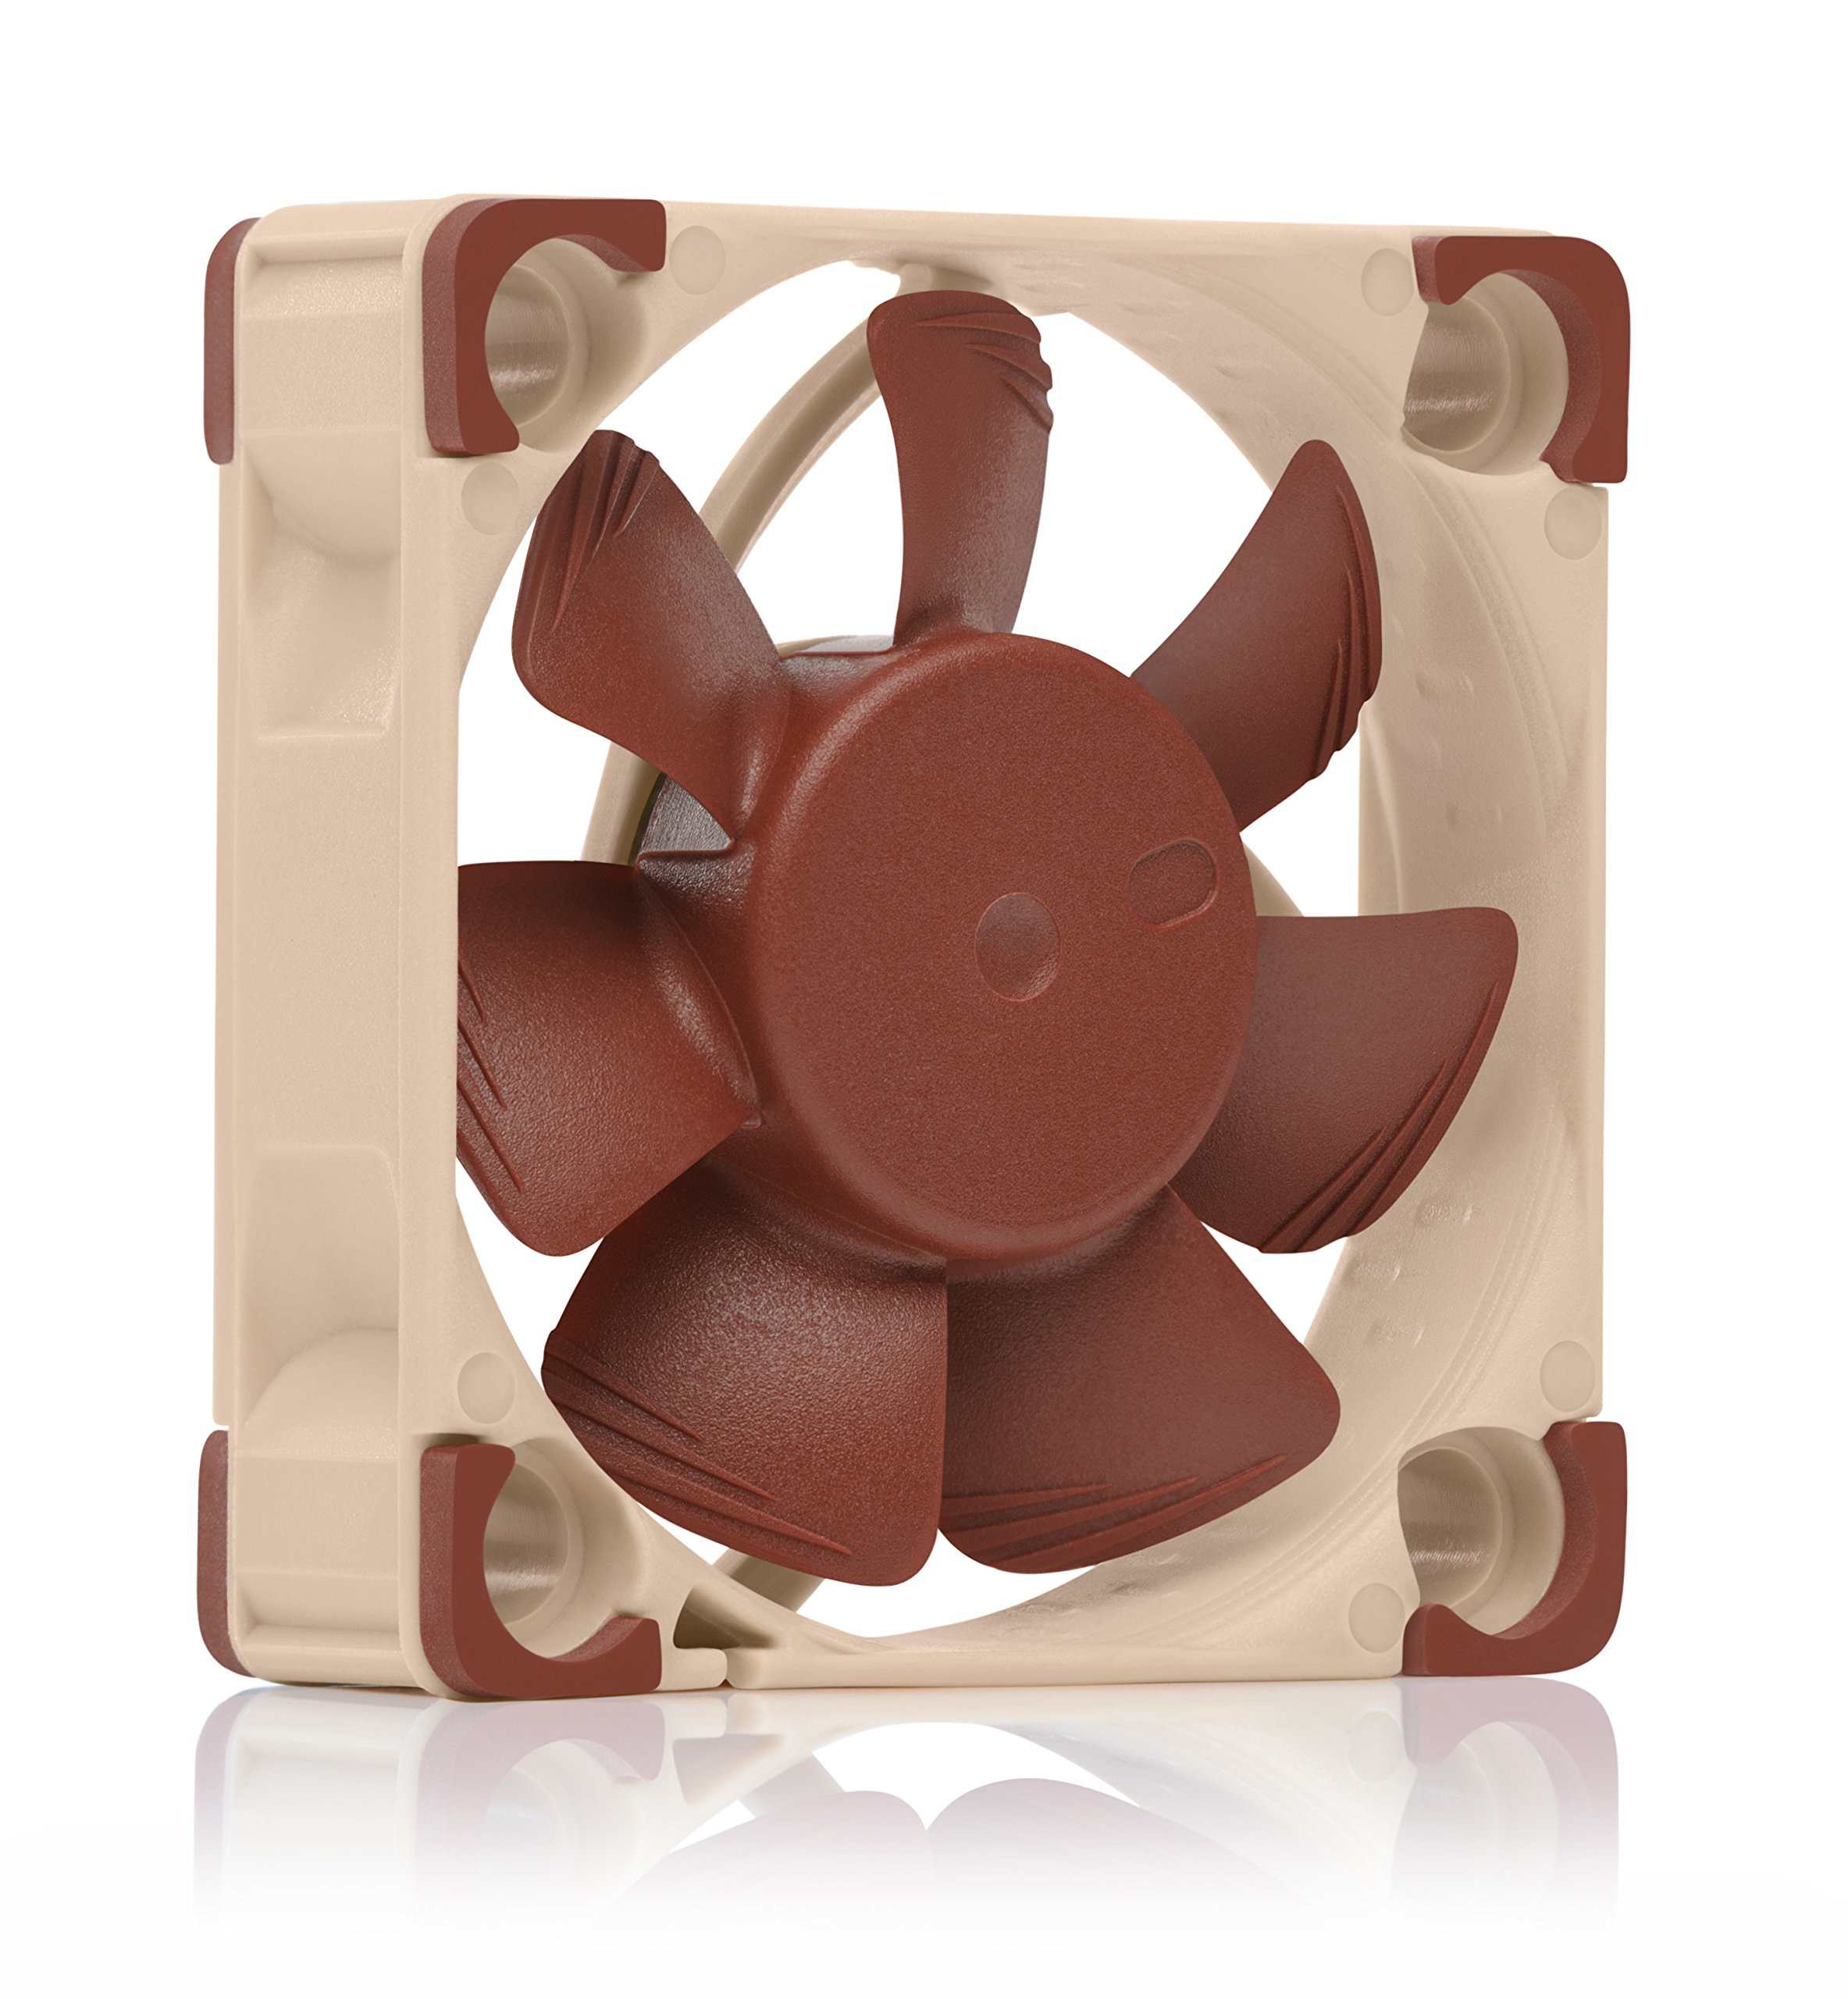 Fan Cooler Noctua Nf-a4x10 Flx, Premium Quiet Fan, 3-pin (40